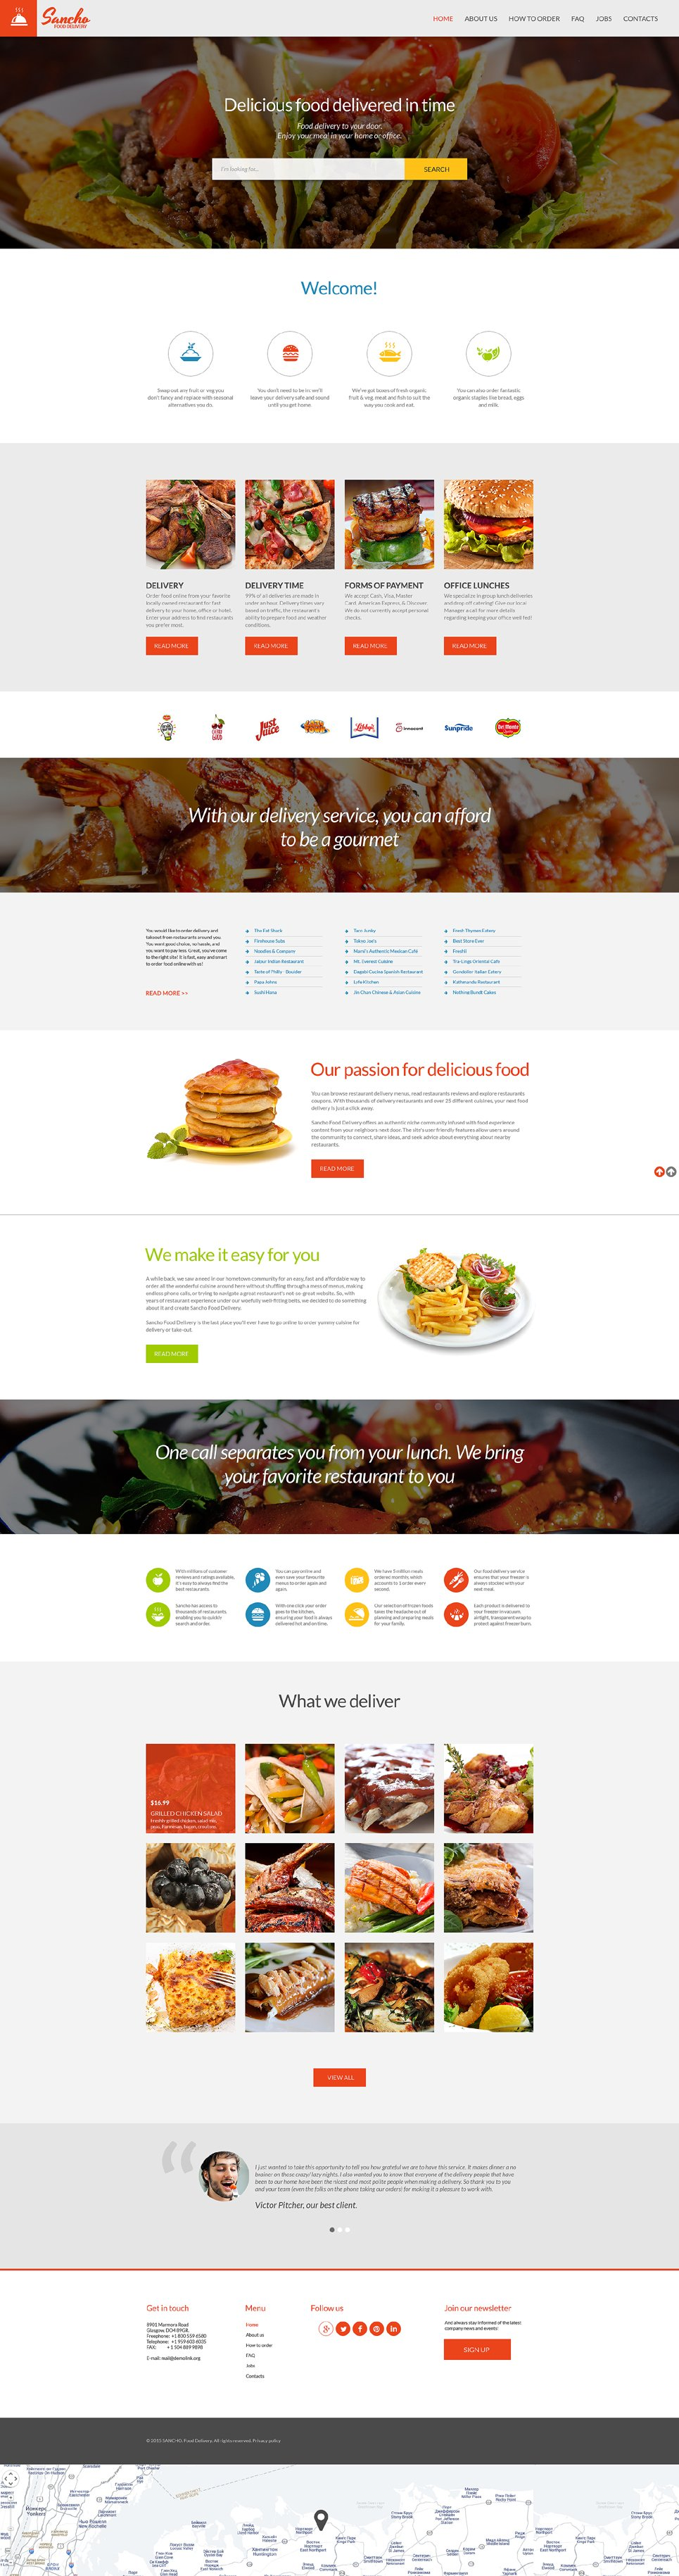 food delivery services web template. Black Bedroom Furniture Sets. Home Design Ideas